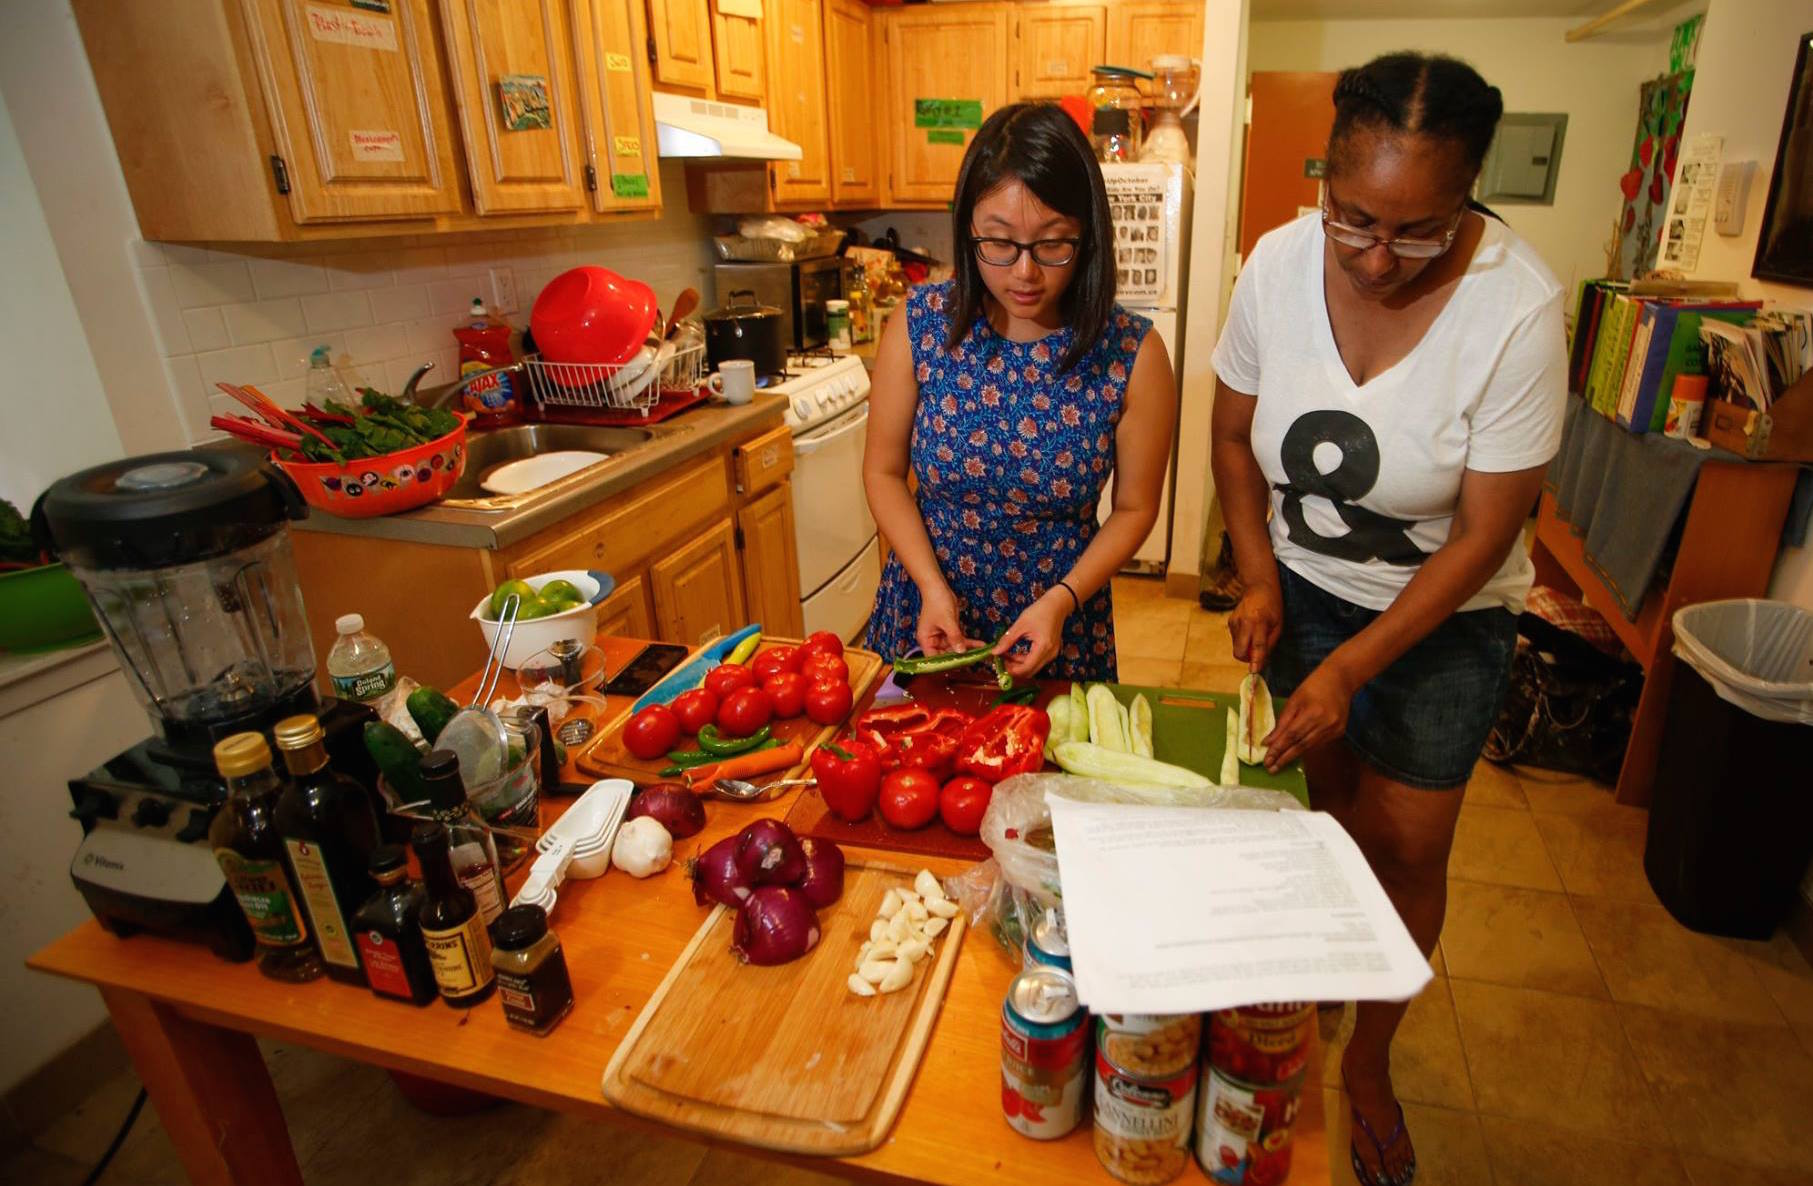 """""""Cooking Through the Diaspora"""" ongoing work around identity, self-determination, and decolonization through cooking practices and the exploration of modern-day food culture. (photograph by Ricky Flores, 2016)"""